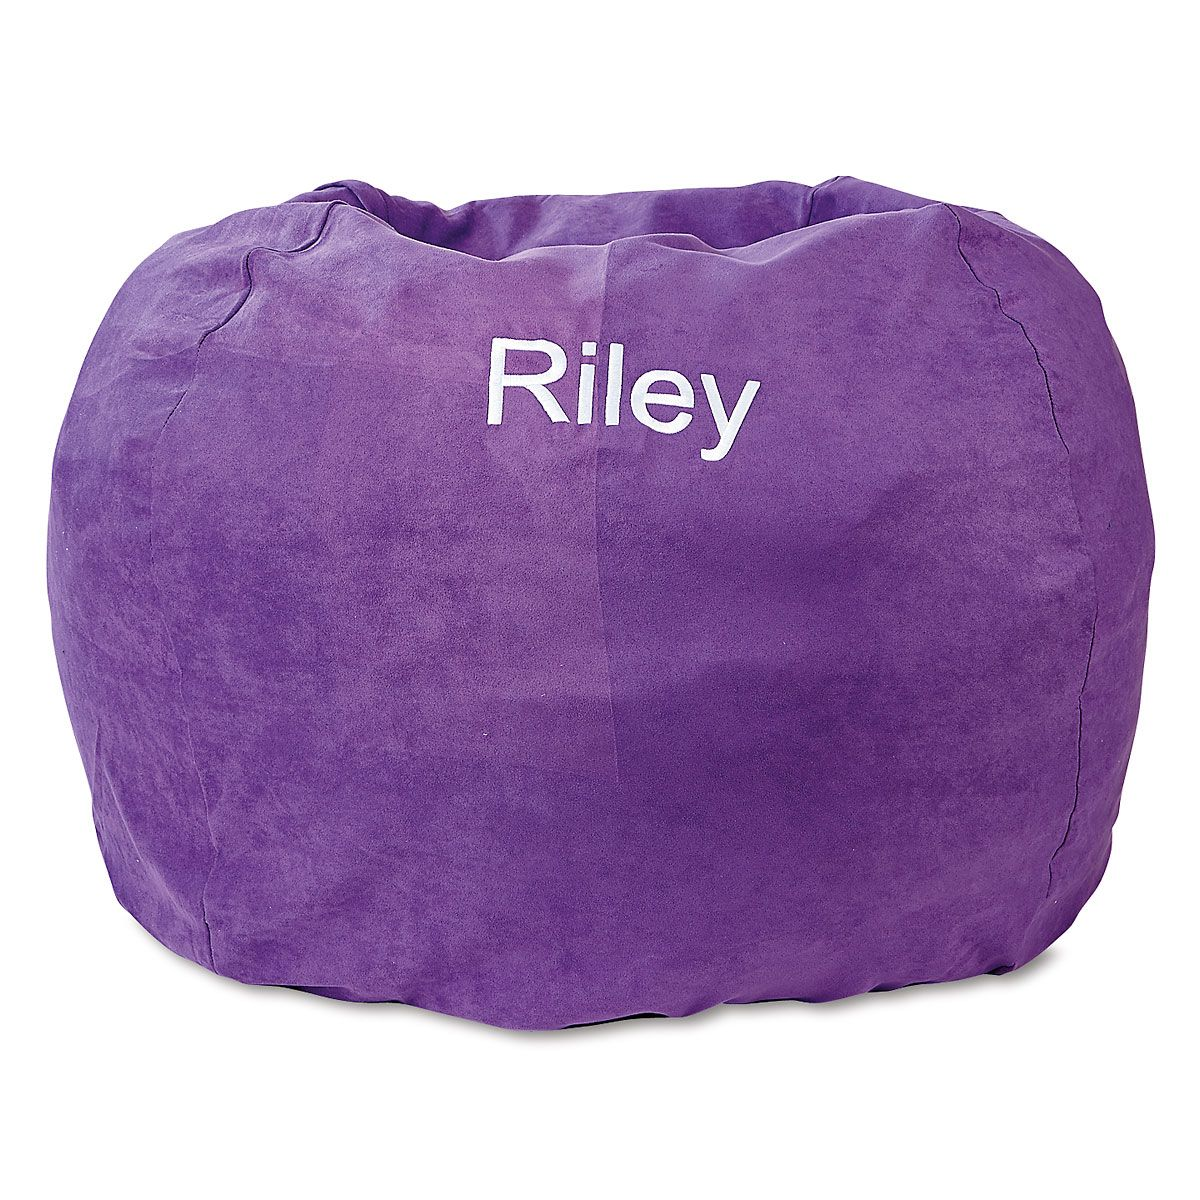 child bean bag chair personalized clear plastic covers for dining chairs purple lillian vernon